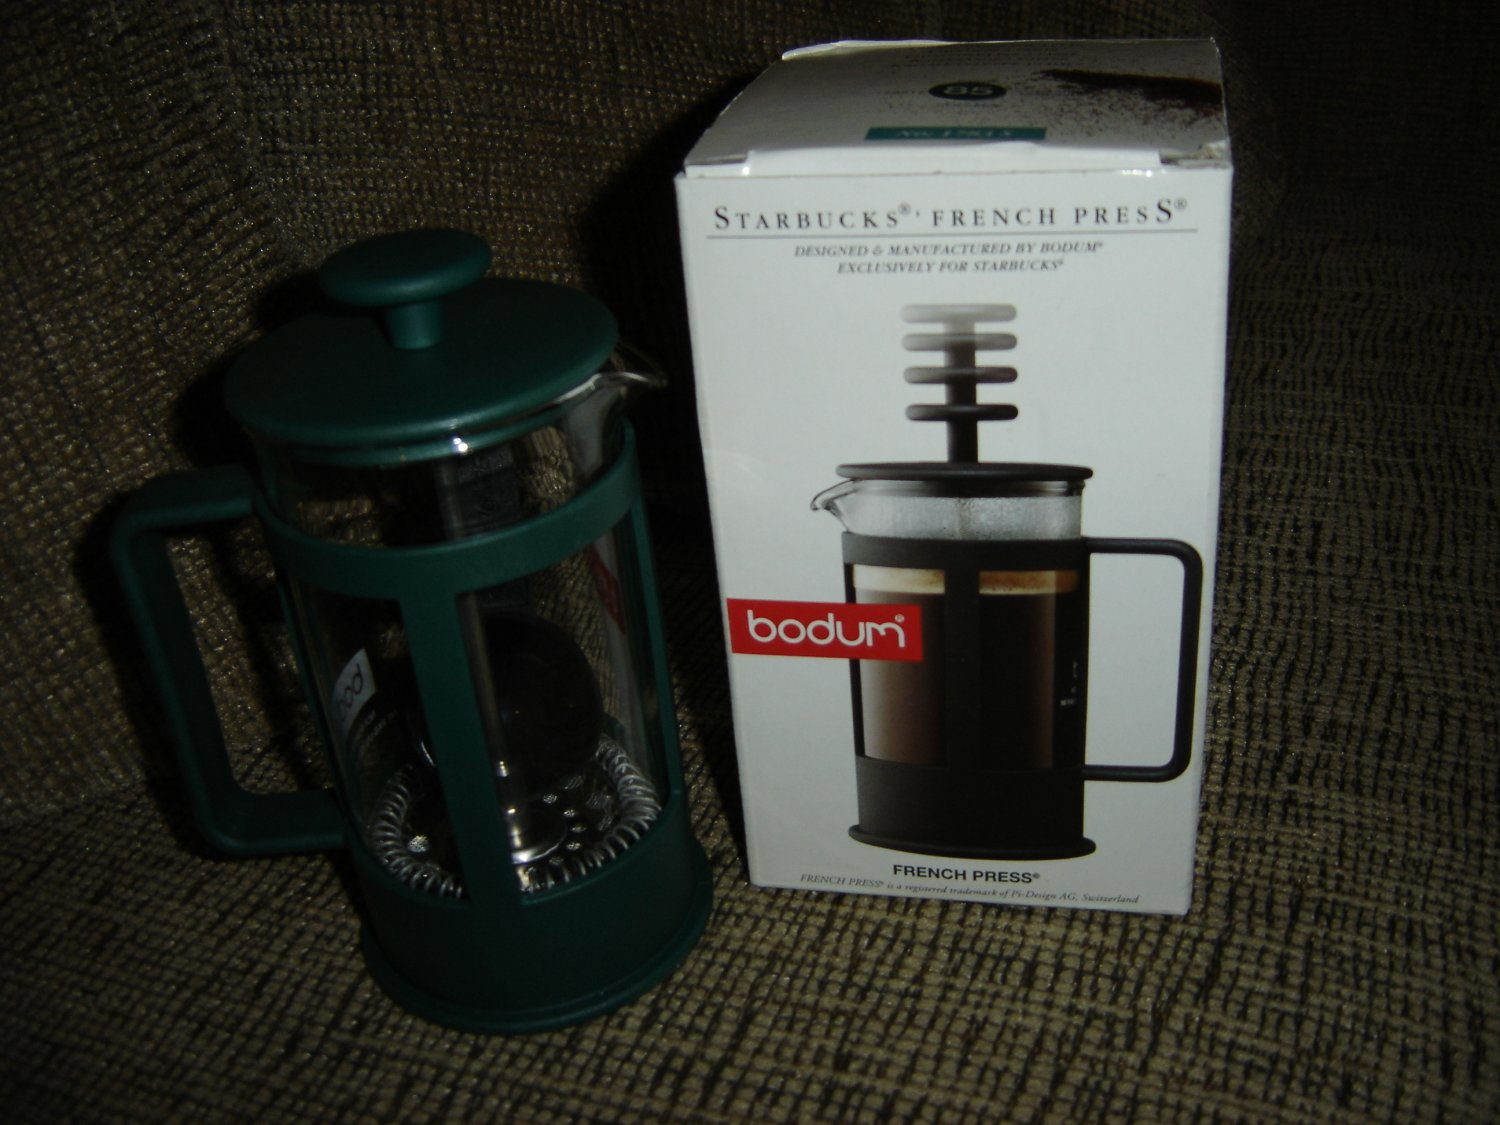 Starbucks Press Coffee Maker : STARBUCKS BODUM 3 CUP NO. 1783 S FRENCH PRESS COFFEE MAKER - BRAND NEW!